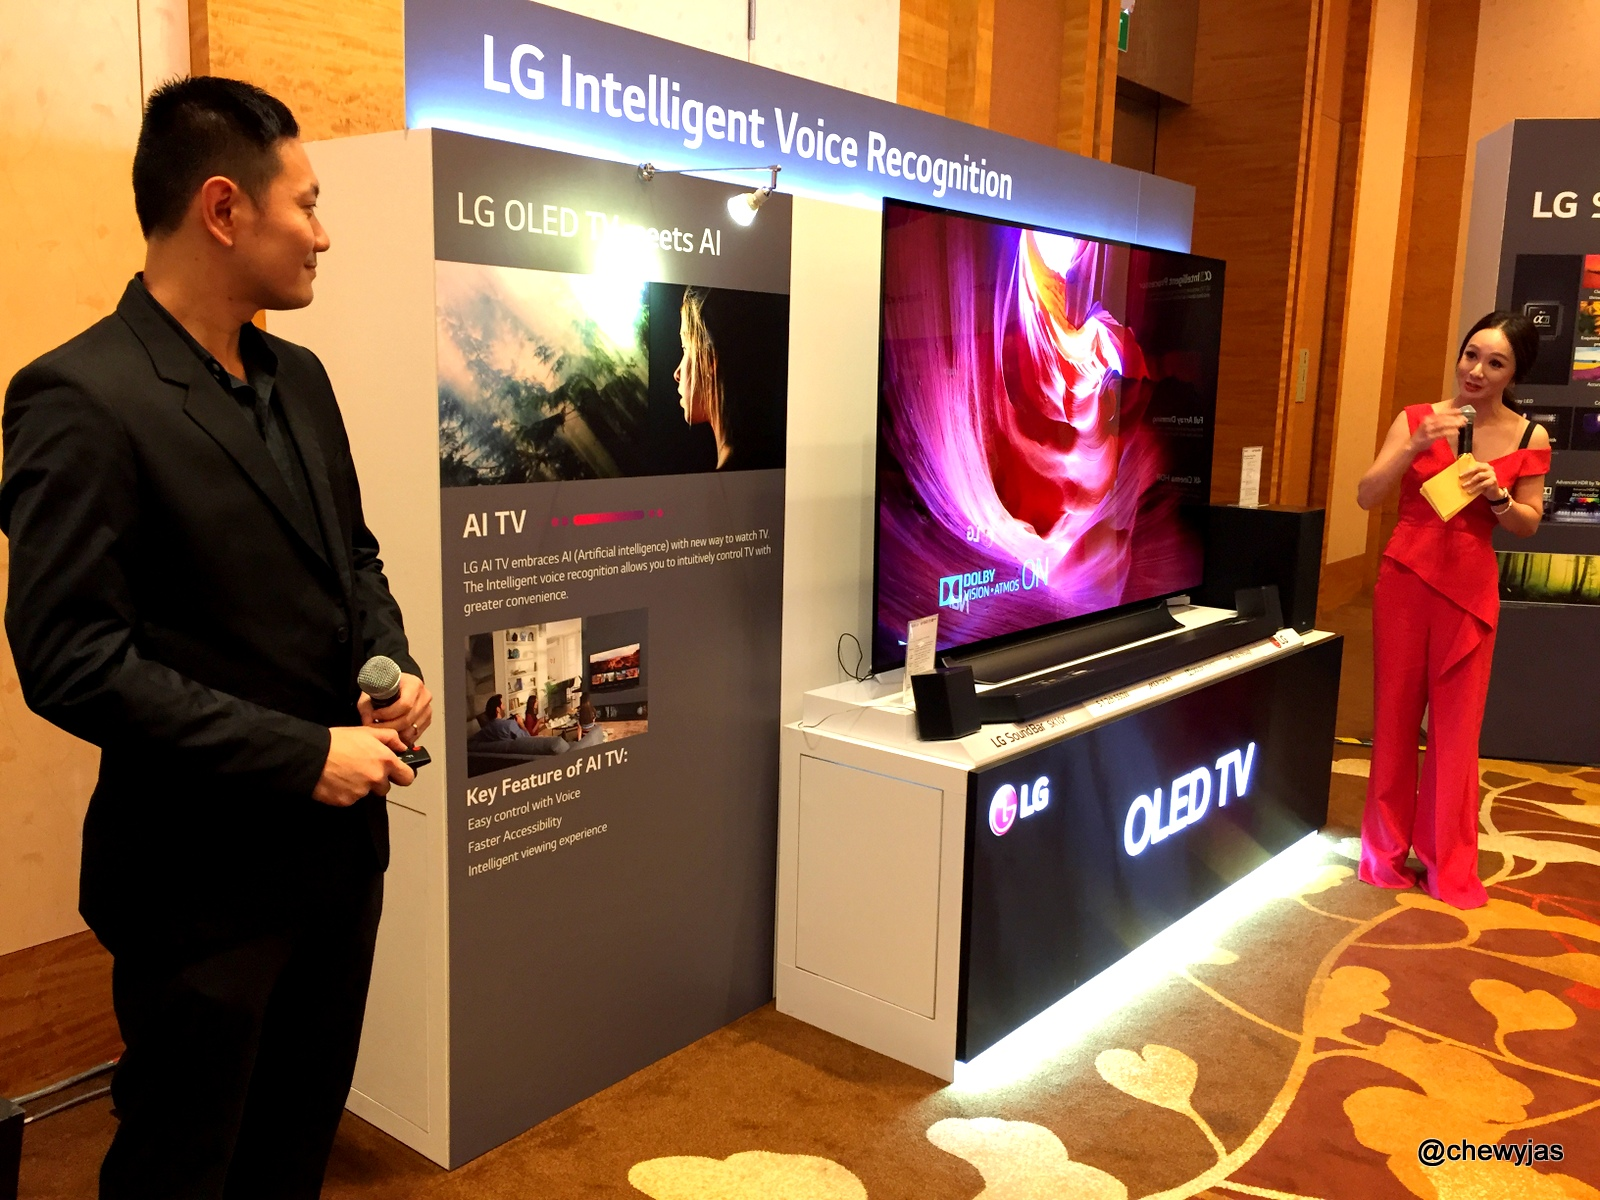 ChewyJas: [EVENT] LG 2018 Home Entertainment & IT Media Launch